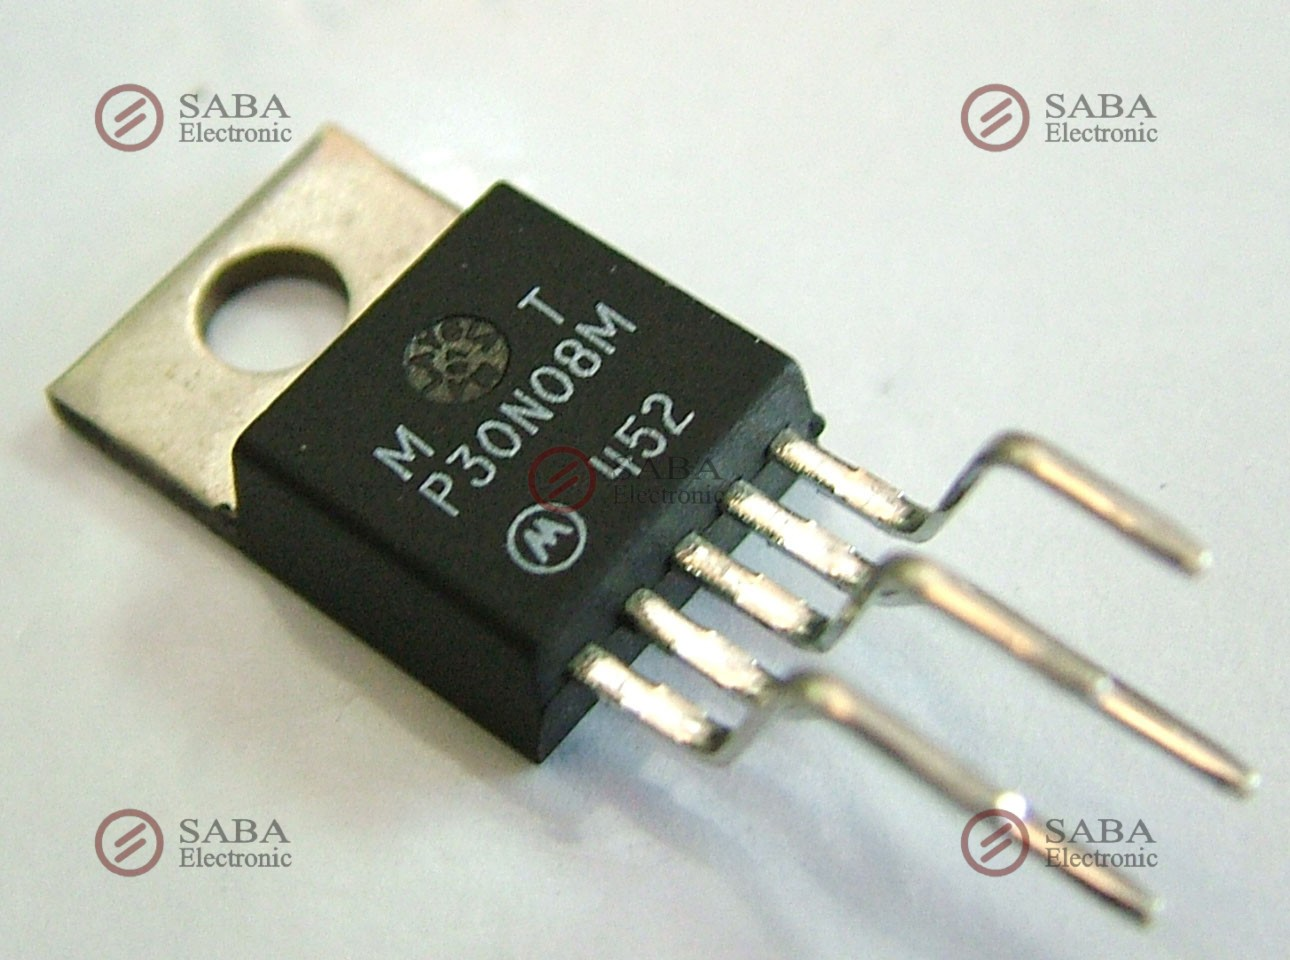 N CANALES 200 V 9.5 A IRF630N ir TO-220 MOSFET